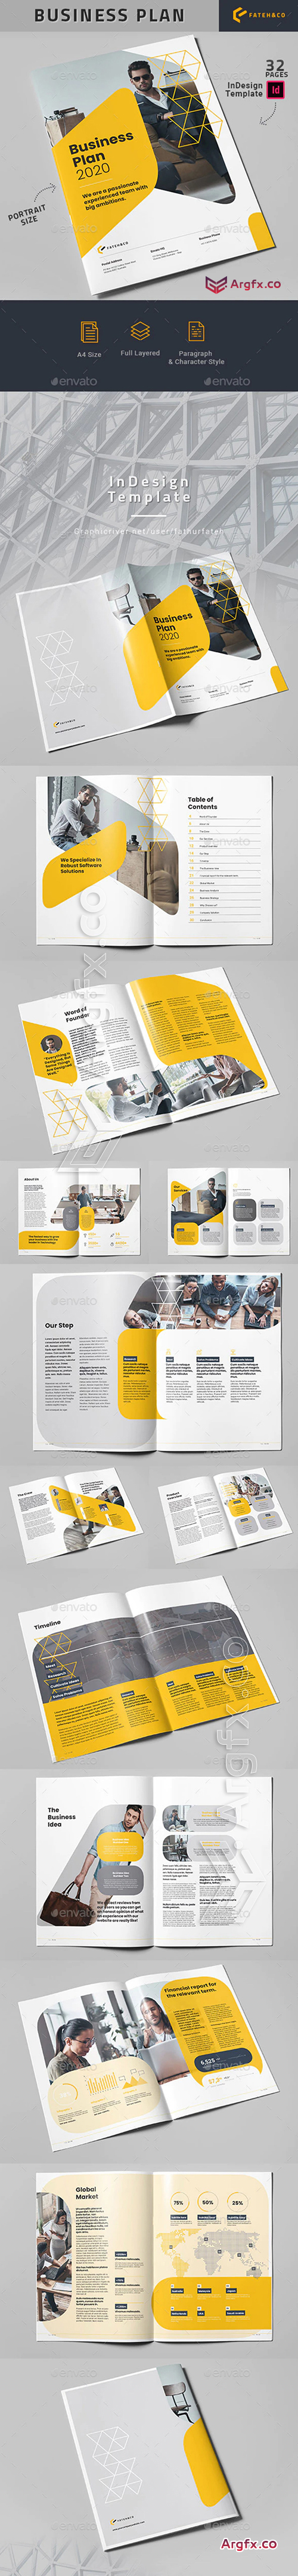 GraphicRiver - Business Plan 2020 25695832